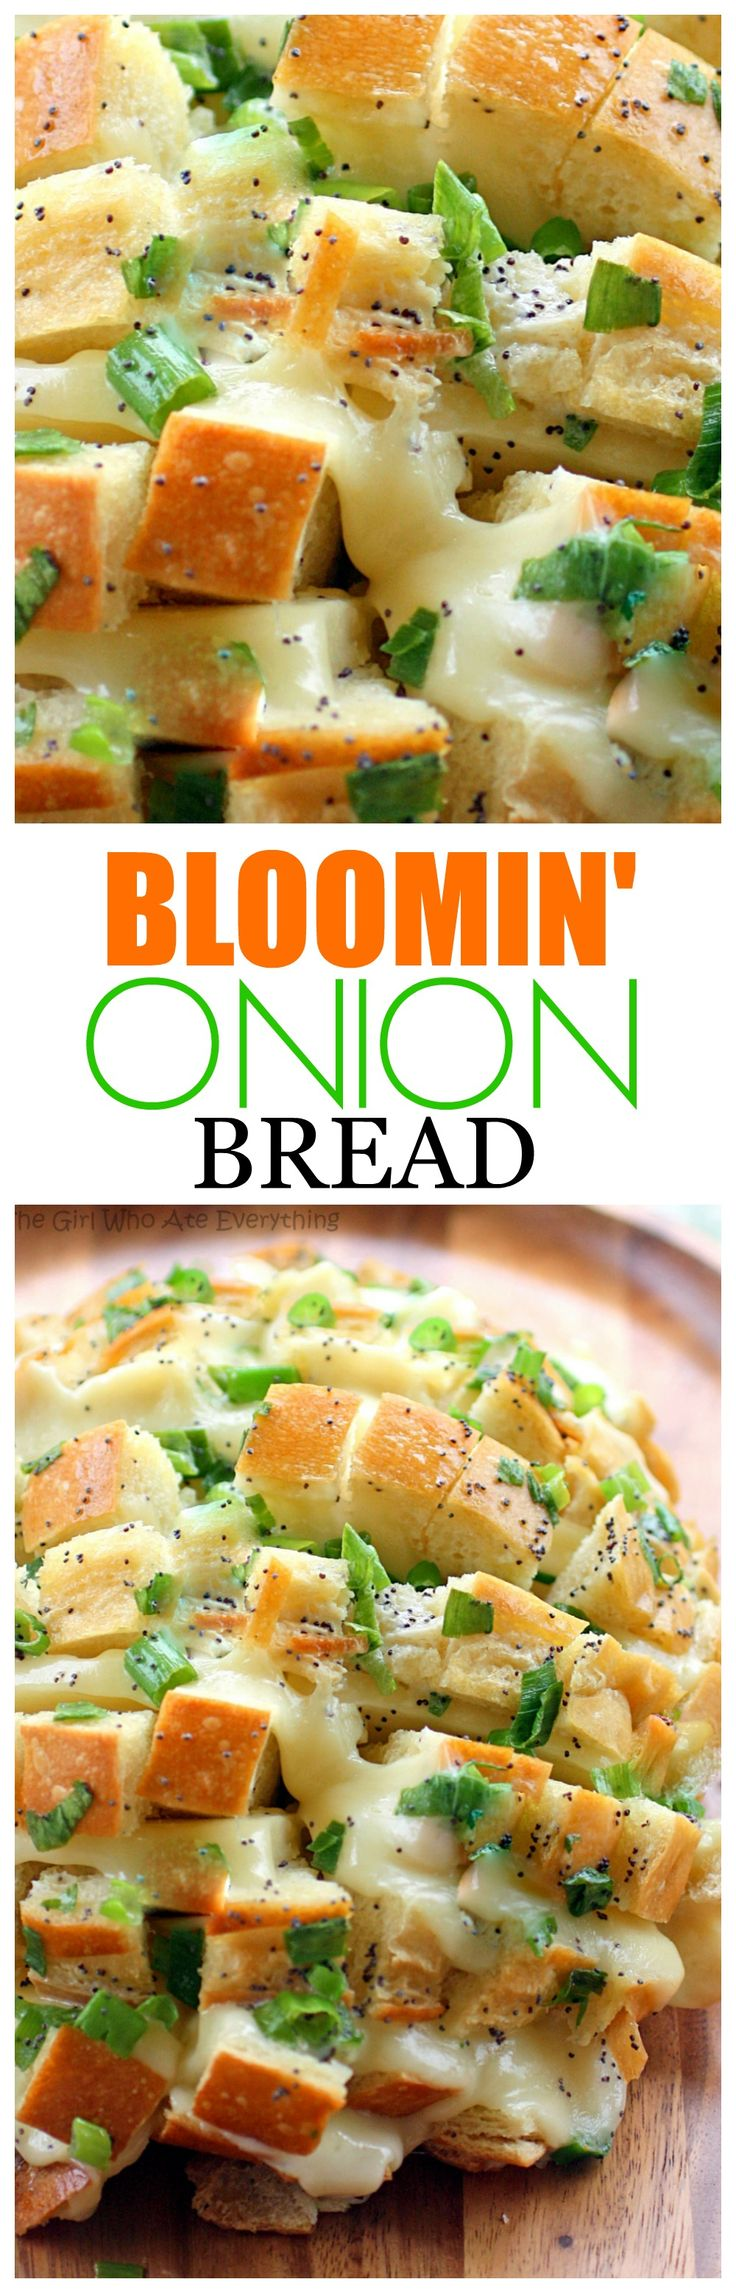 1321 best appetizers images on pinterest cooking food savory bloomin onion bread one of my favorite party appetizers the girl bloomin onion breaddip recipeseasy recipeslunch forumfinder Image collections